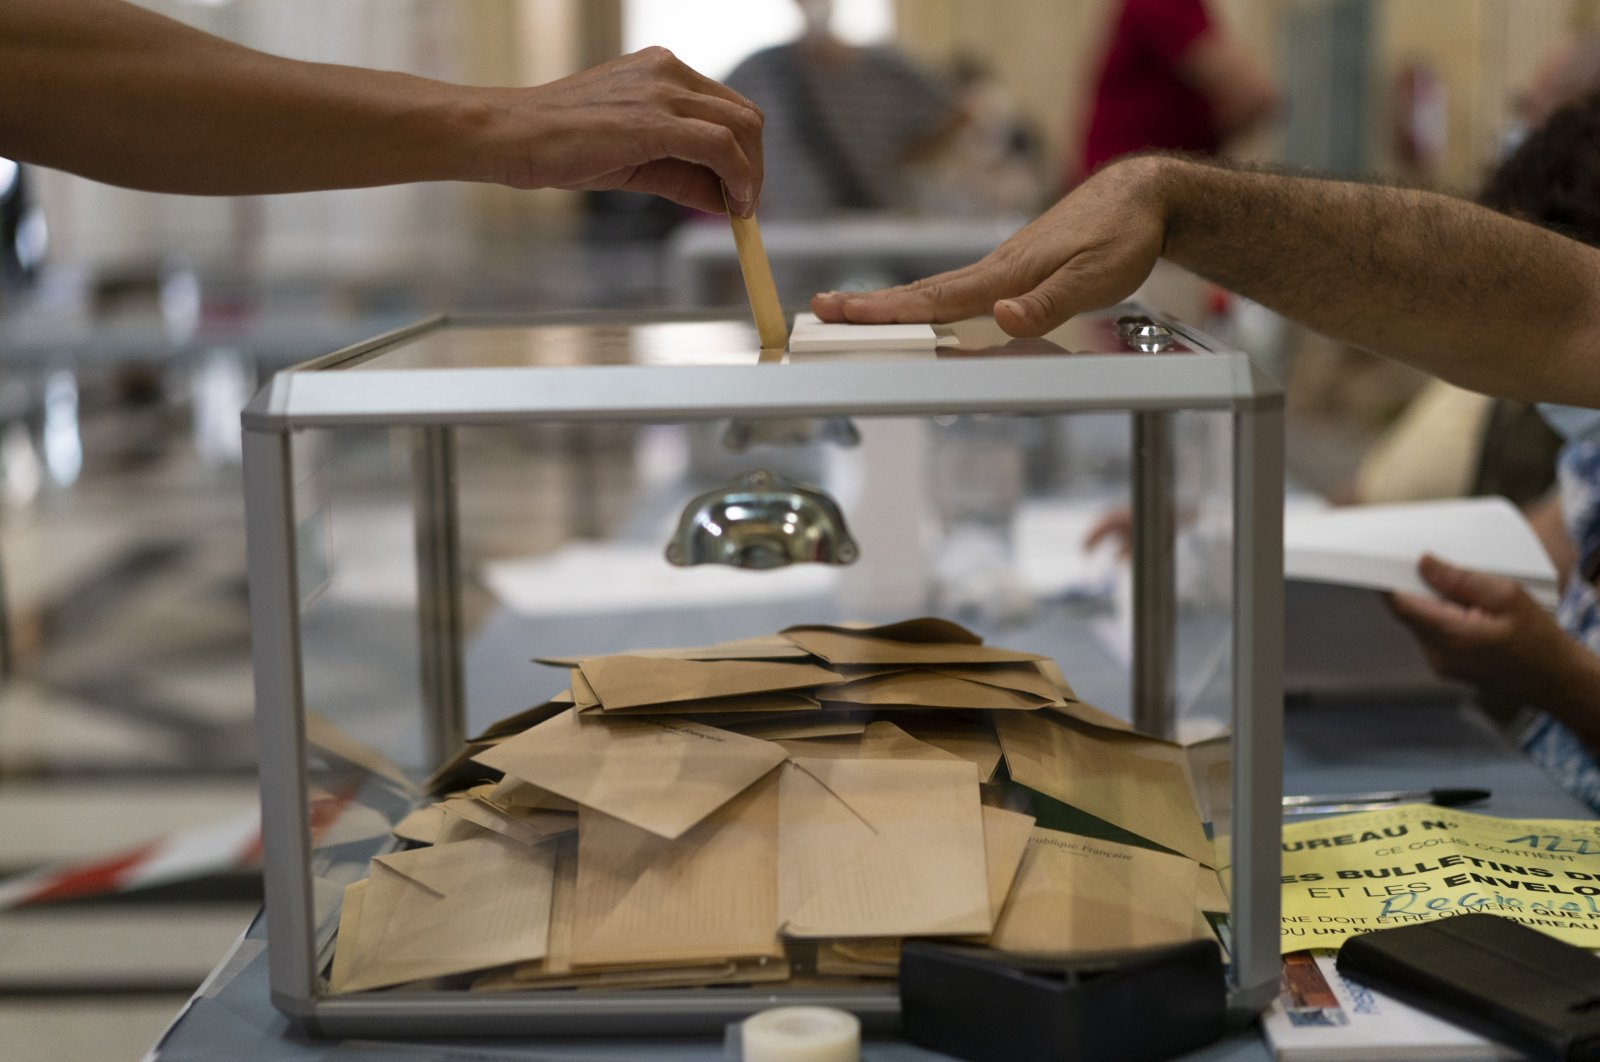 A woman casts her vote during regional elections in Marseille, southern France, June 20, 2021. (AP Photo)